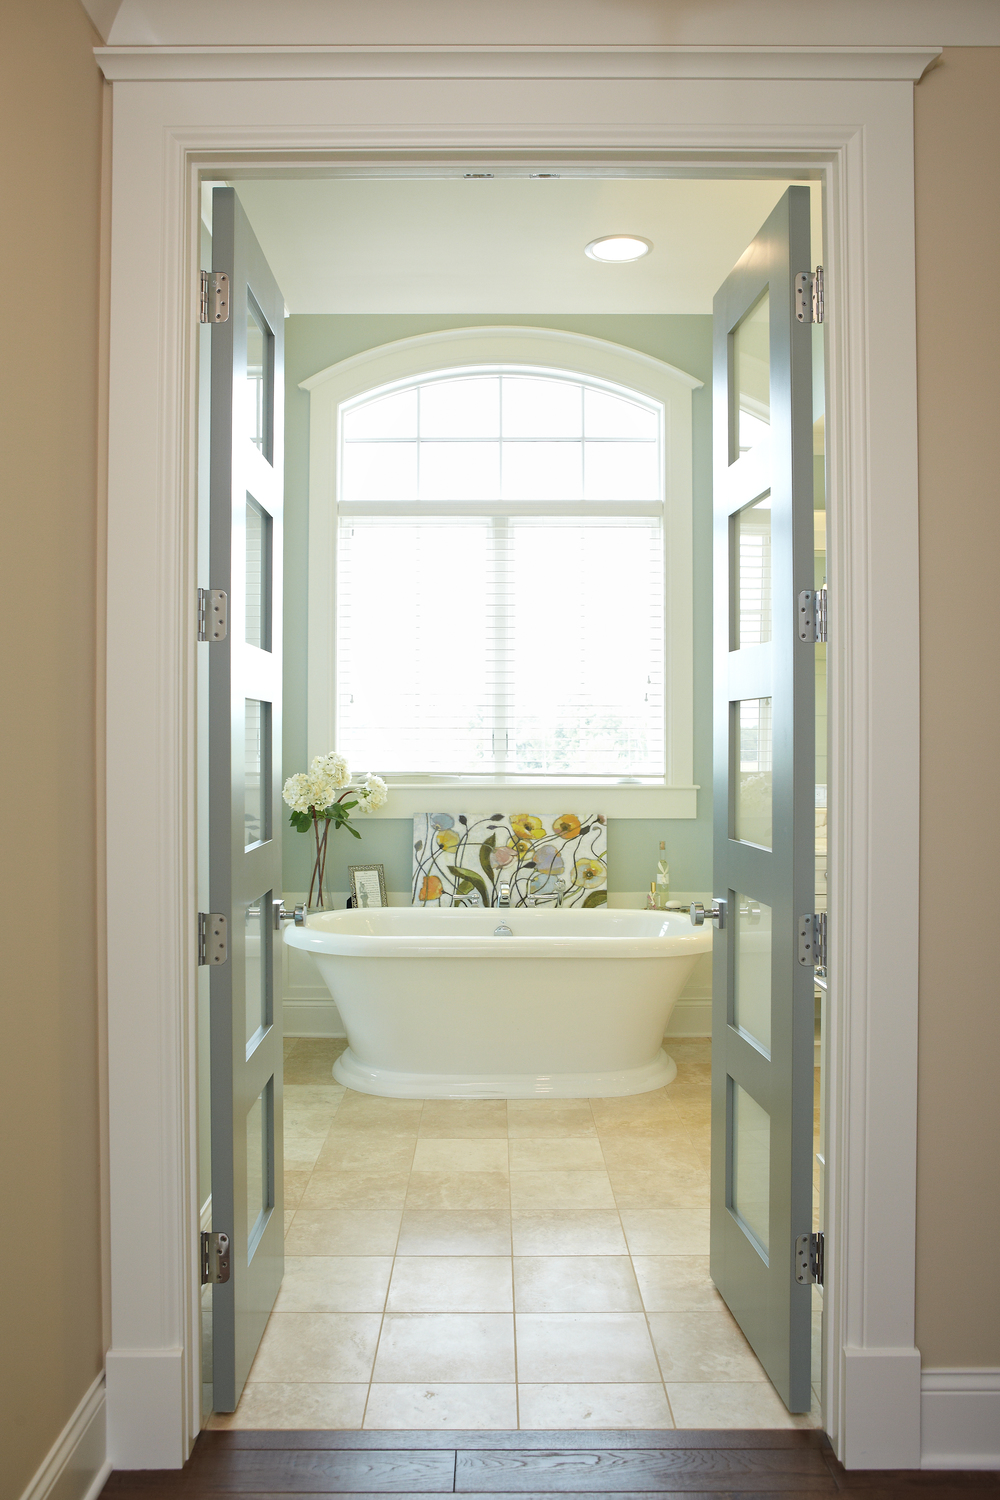 master bath entry_008ashleyavilaphoto_6.29.12.jpg